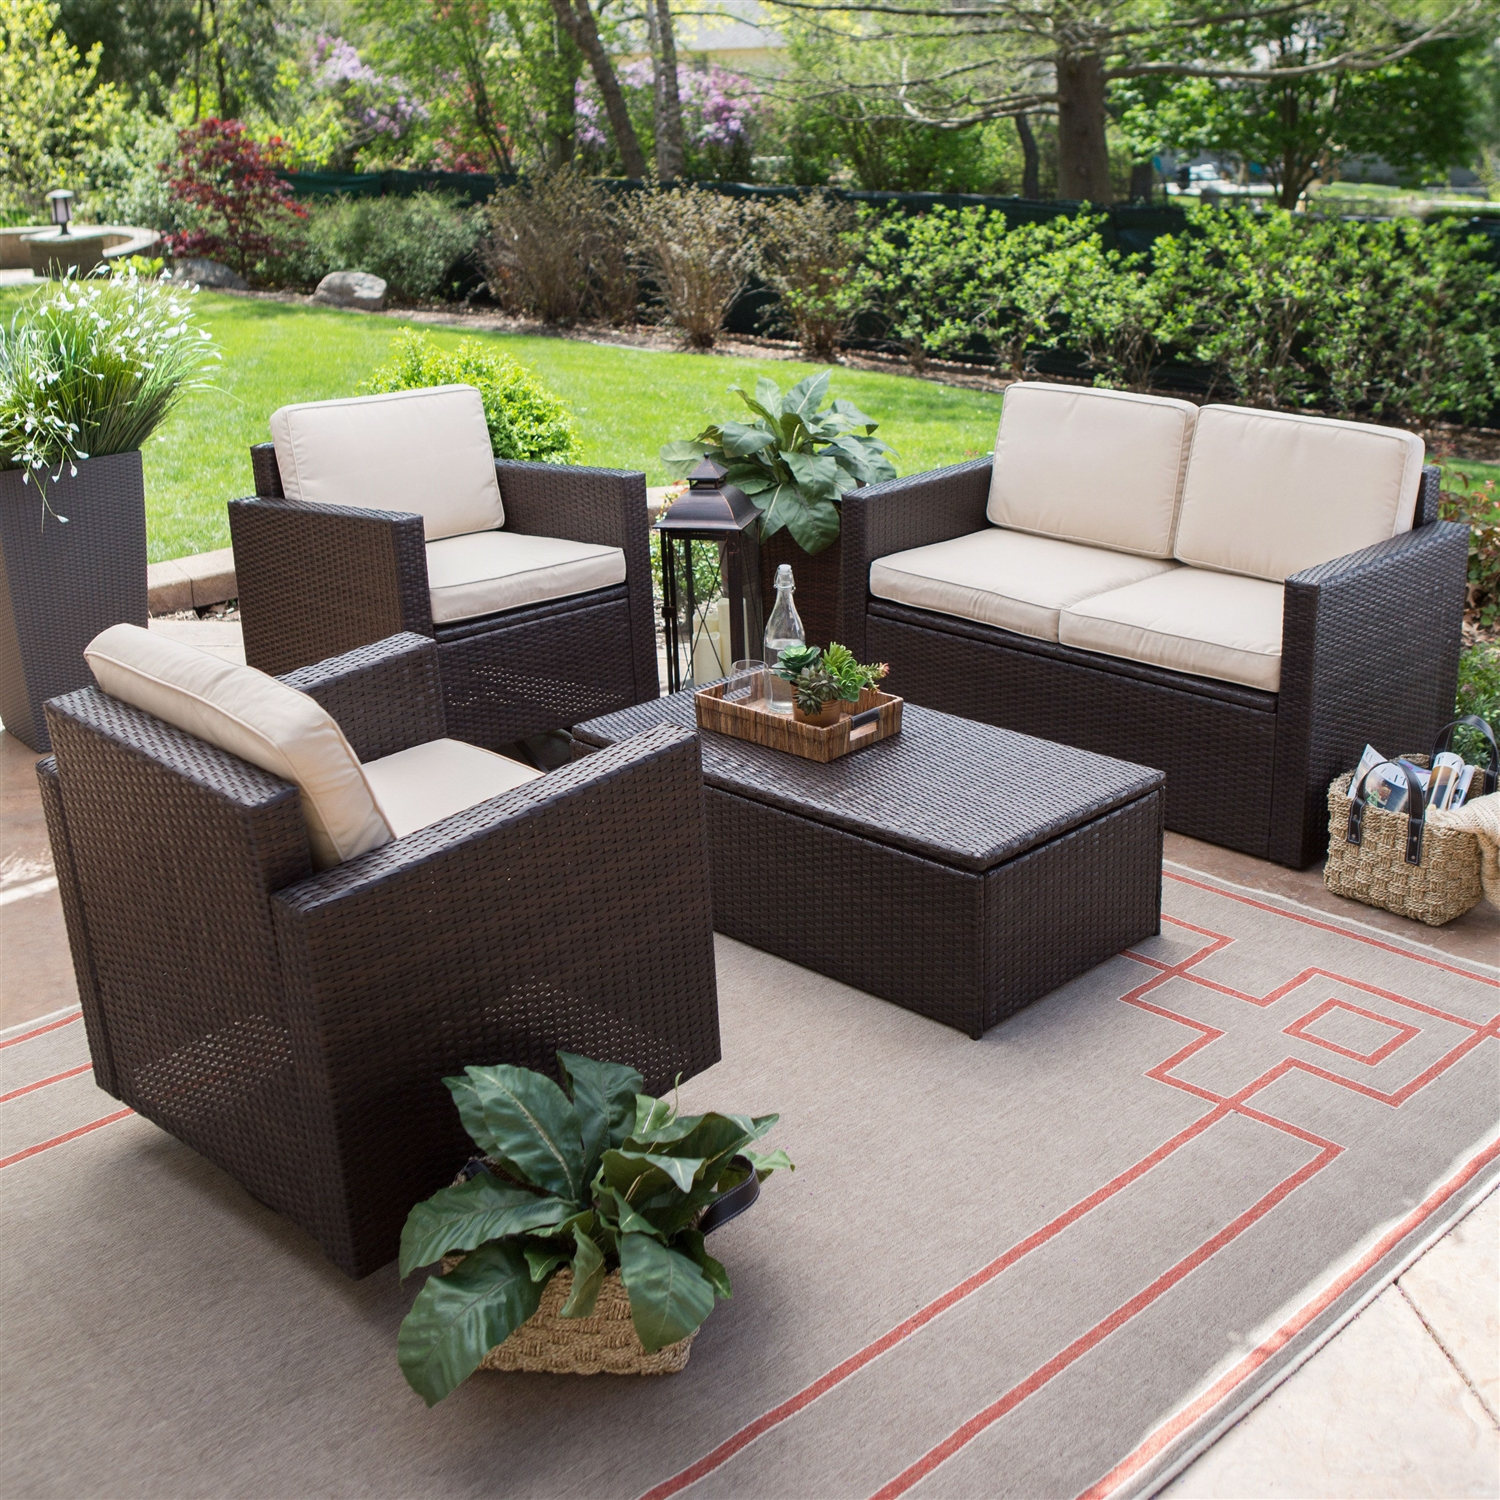 Outdoor Wicker Resin 4 Piece Patio